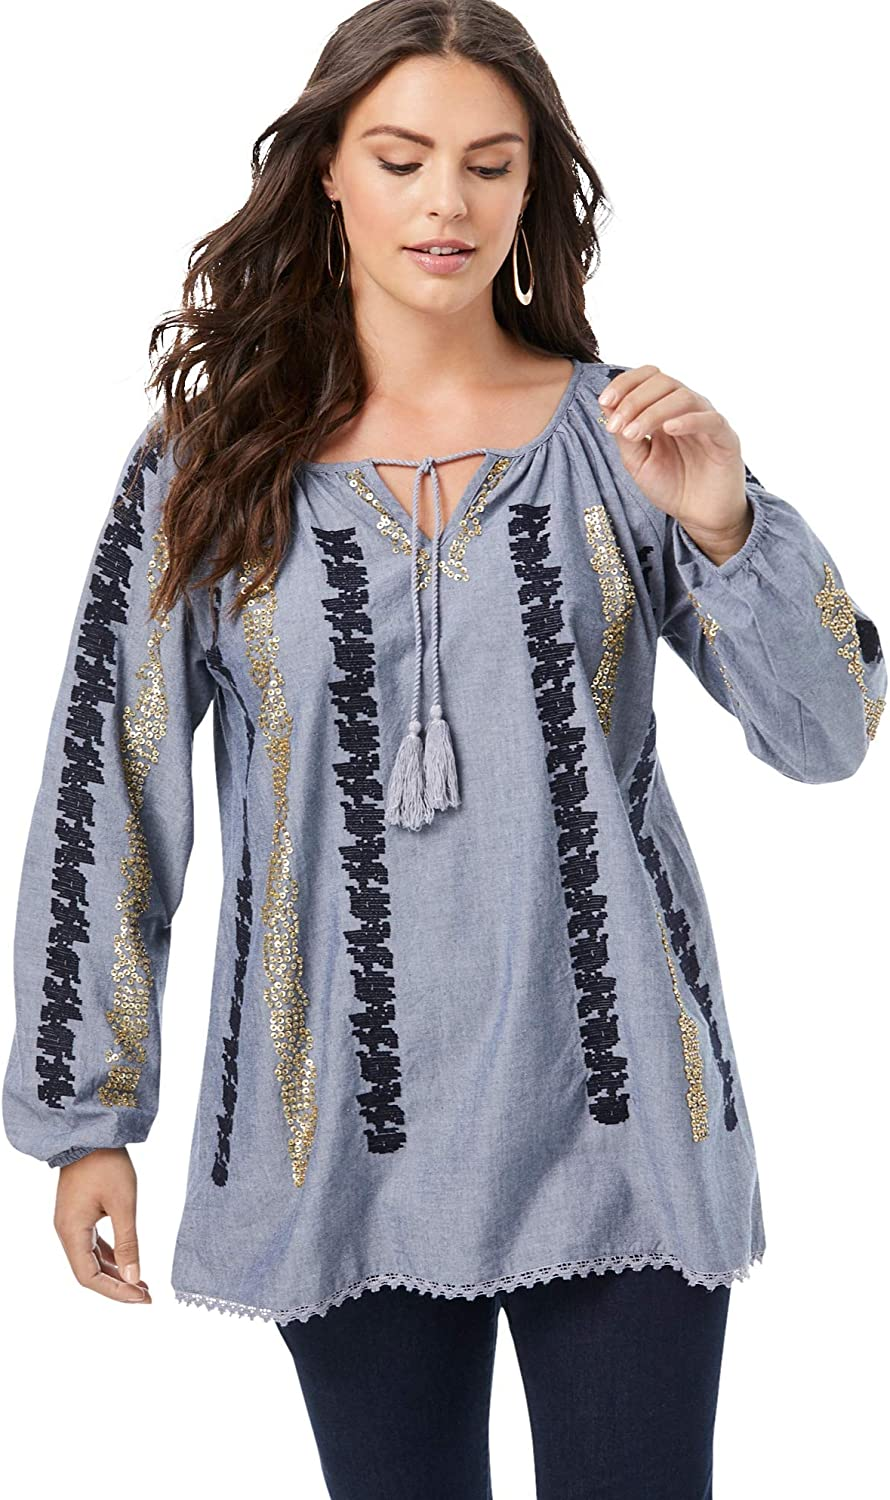 Roamans Women's 完全送料無料 Plus Size Embellished Embroidere Top Sequin 正規激安 Boho